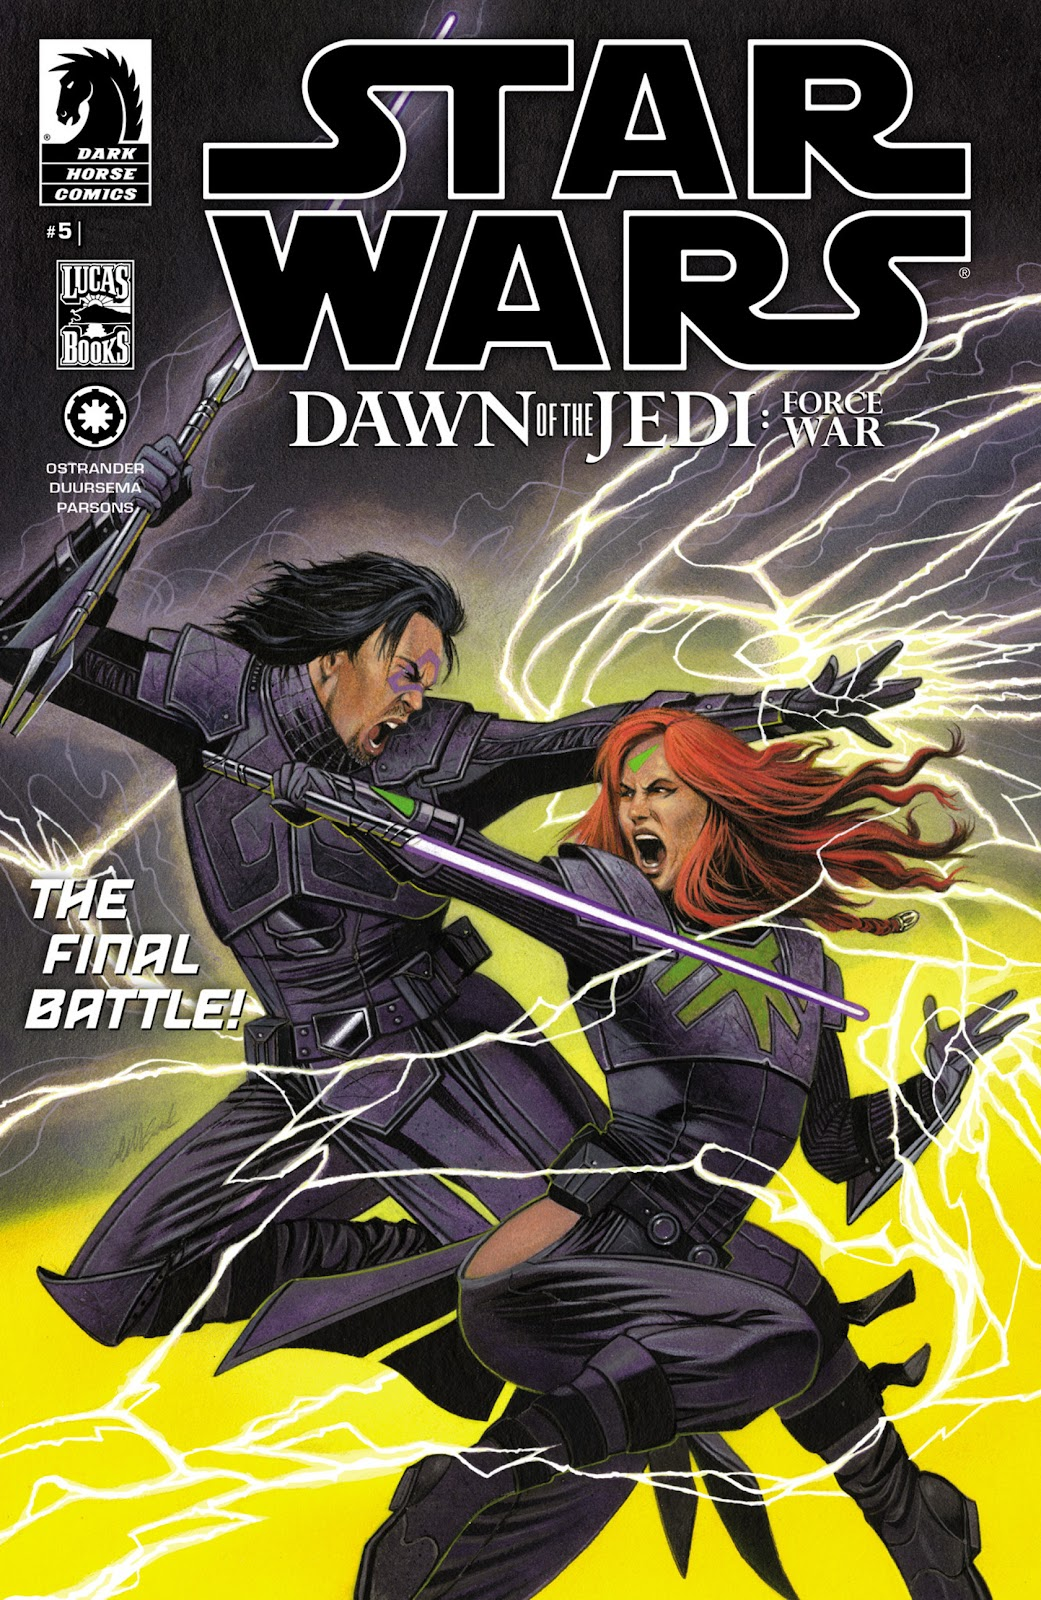 Star Wars: Dawn of the Jedi - Force War issue 5 - Page 1